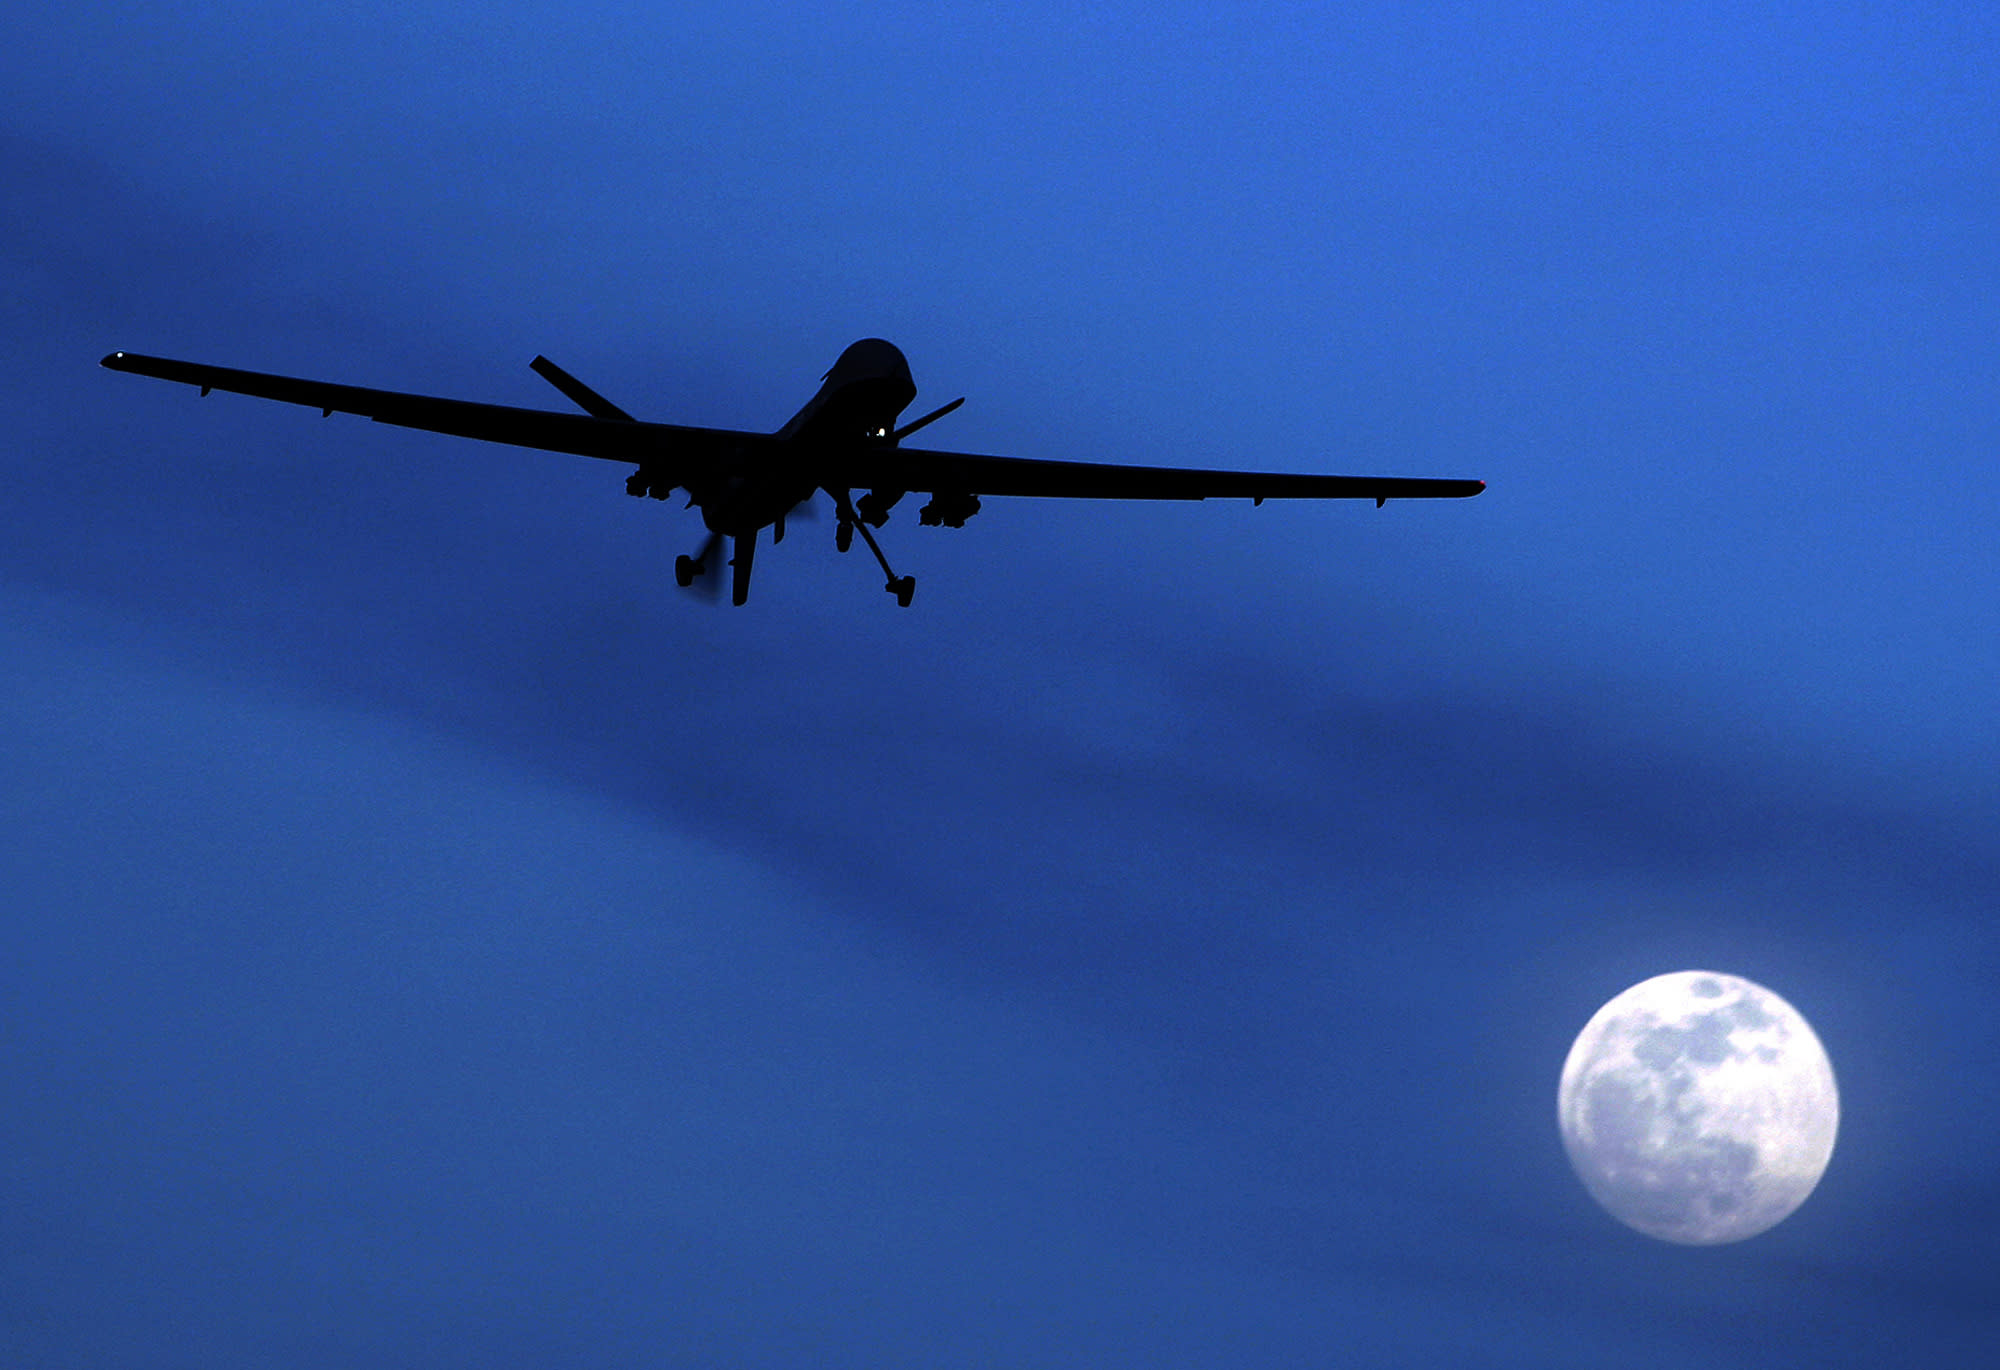 FILE - In this Sunday, Jan. 31, 2010 file photo, a U.S. Predator drone flies over the moon above Kandahar Air Field, southern Afghanistan. The number of U.S. drone strikes in Afghanistan jumped 72 percent in 2012, killing at least 16 civilians in a sharp increase from the previous year, the U.N. said Tuesday, Feb. 19, 2013 in a sign of the changing mission as international forces prepare to withdraw combat forces in less than two years. (AP Photo/Kirsty Wigglesworth, File)